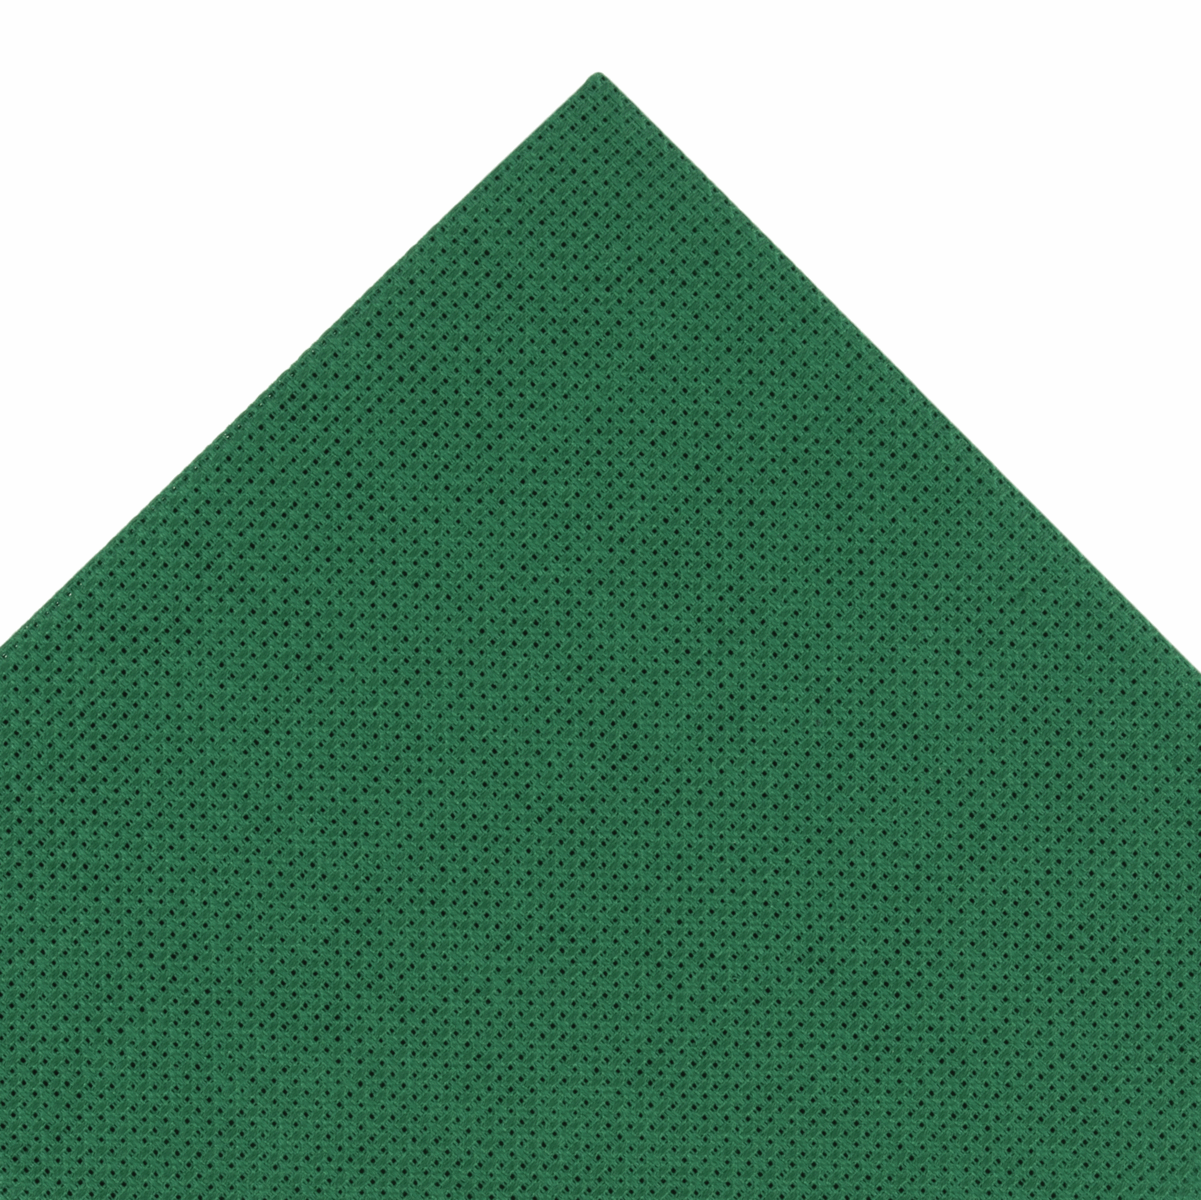 Picture of Needlecraft Fabric: Aida: 14 Count: 30 x 45cm: Green